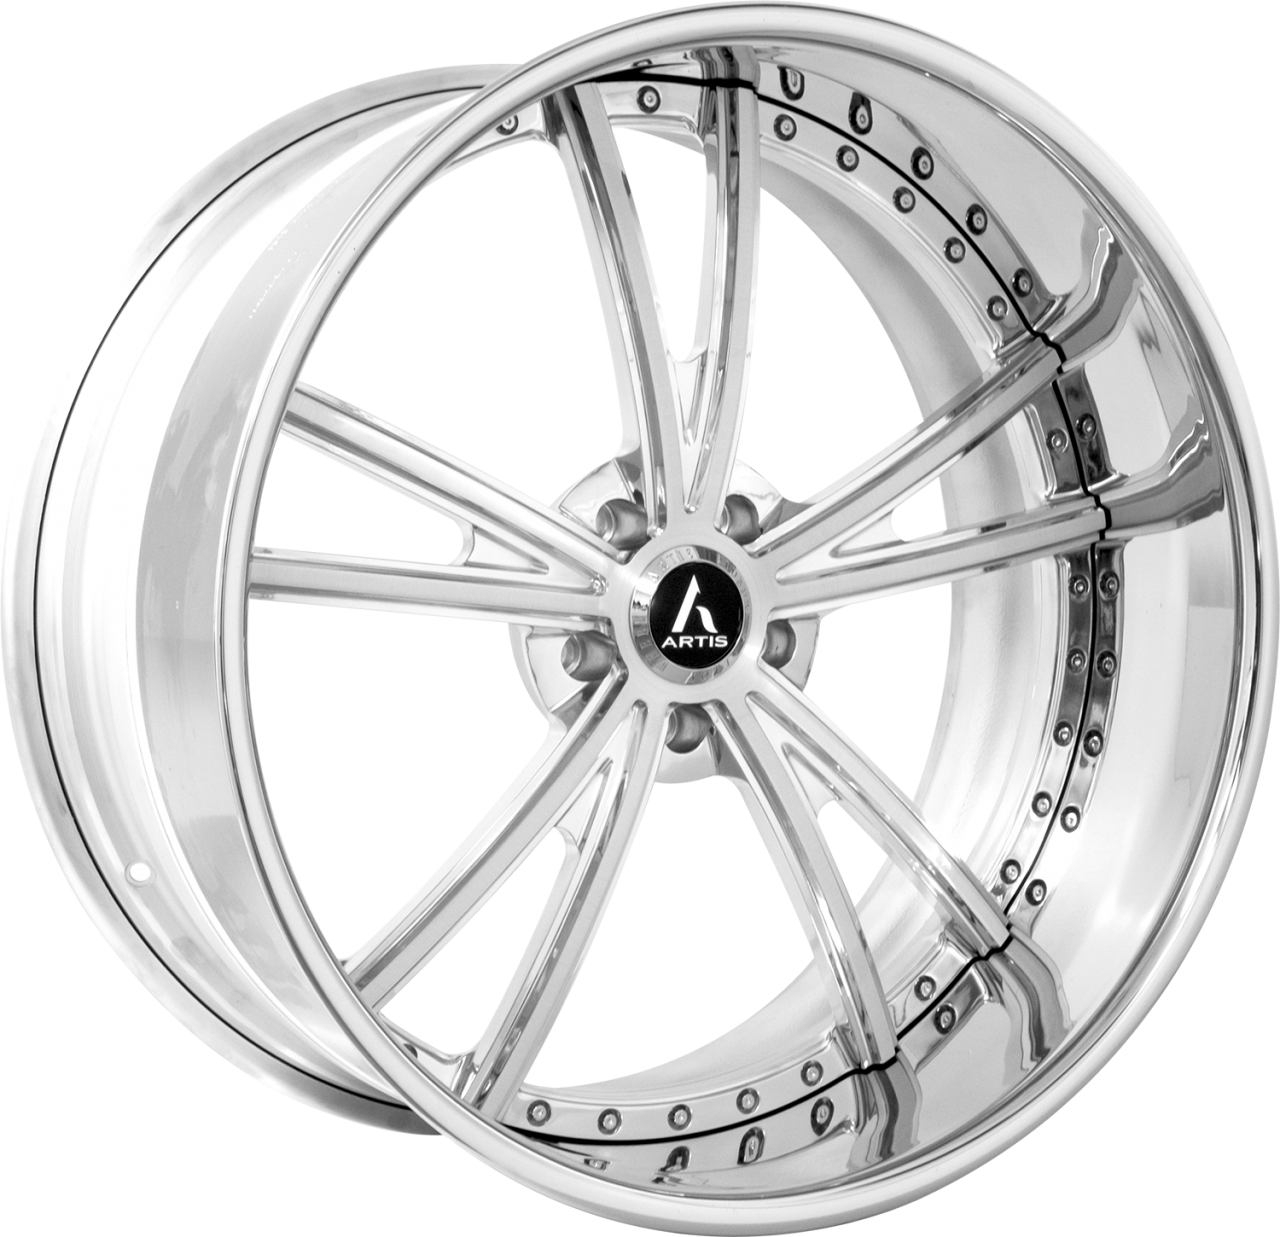 Artis Forged Corvair wheel with Brushed finish